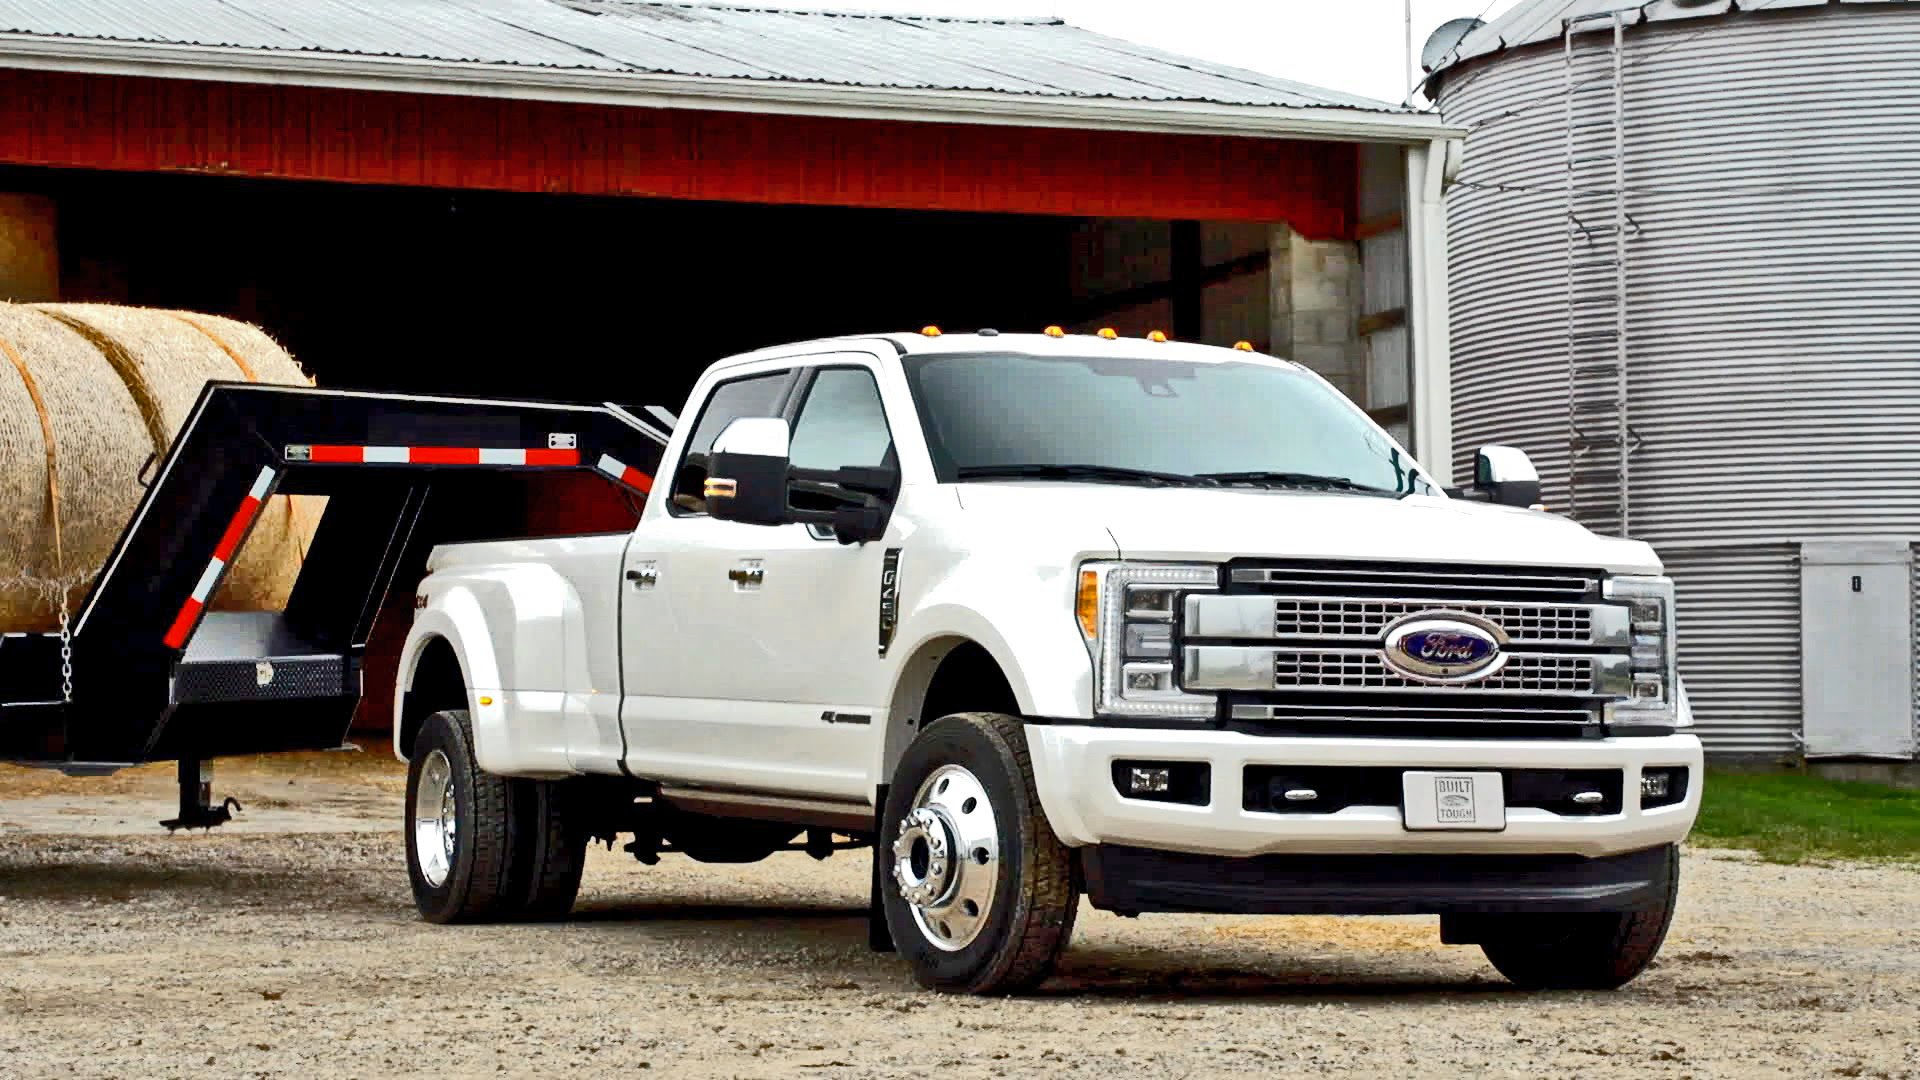 2017 ford f 450 f 550 driveshaft recall bigrigvin for Ford motor company customer service email address